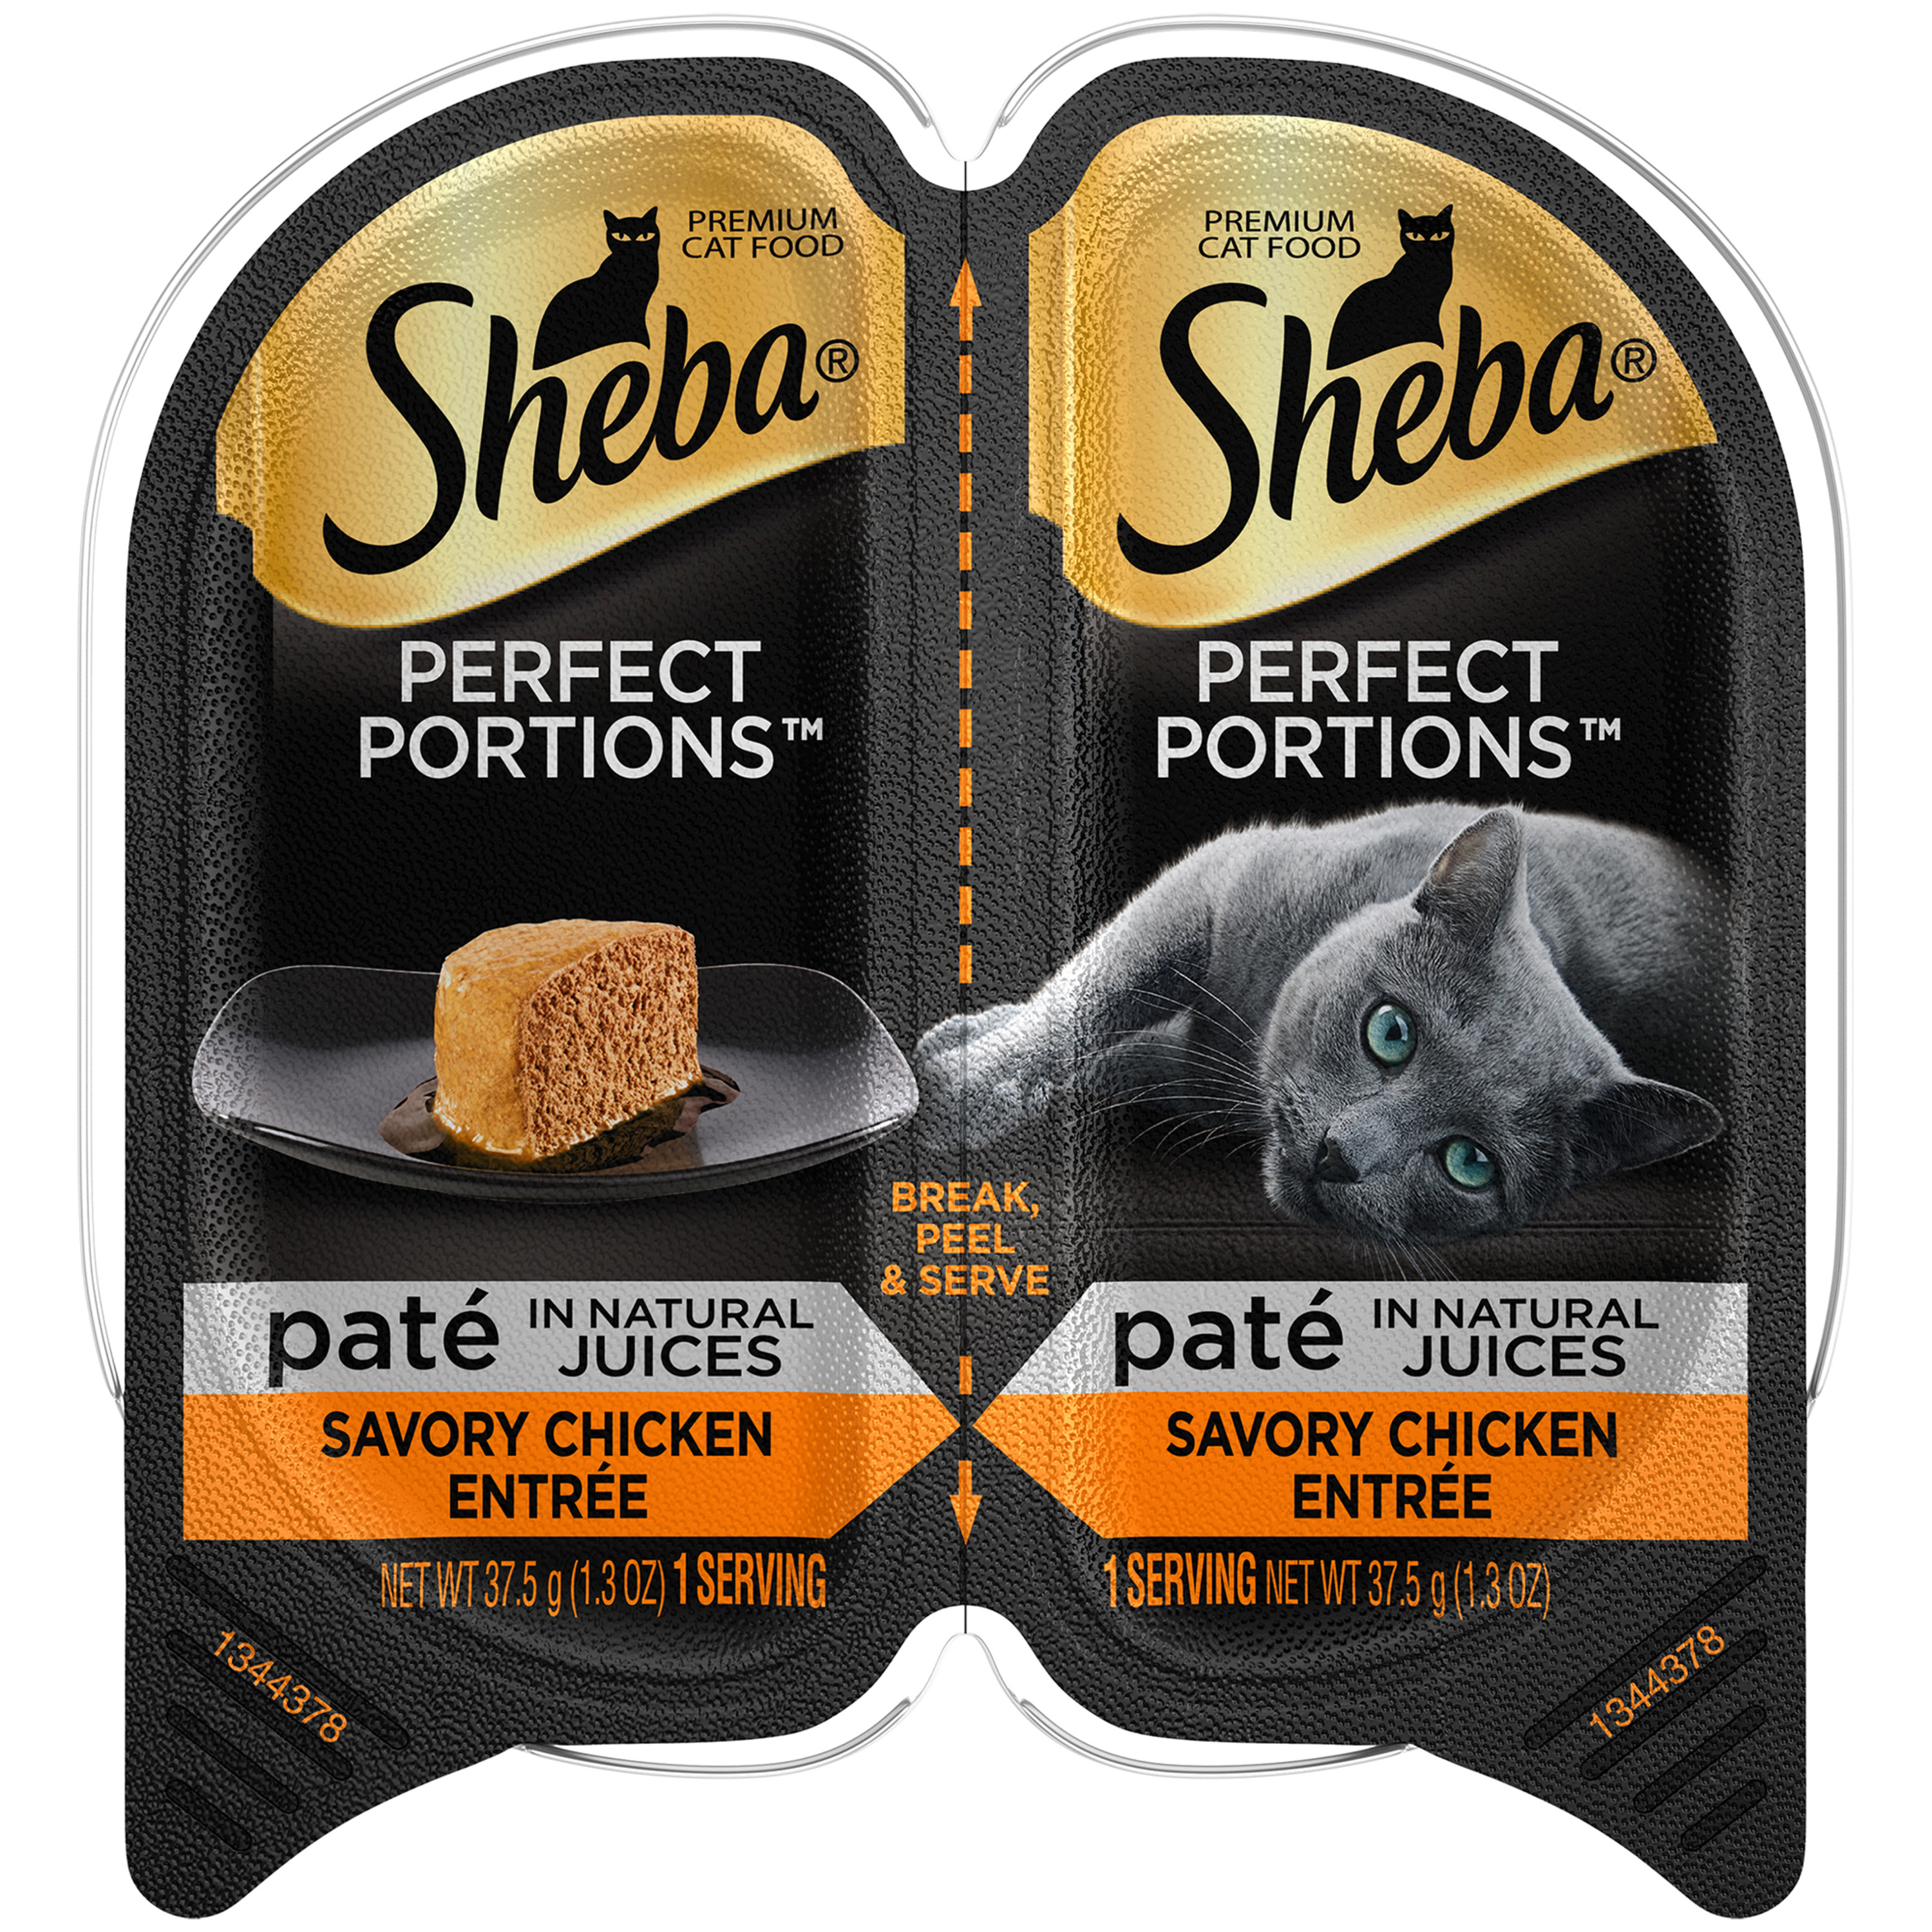 Sheba Perfect Portions Pate In Natural Juices Savory Chicken Grain Free Wet Cat Food 2.6 Ounces (1 Twin Pack)